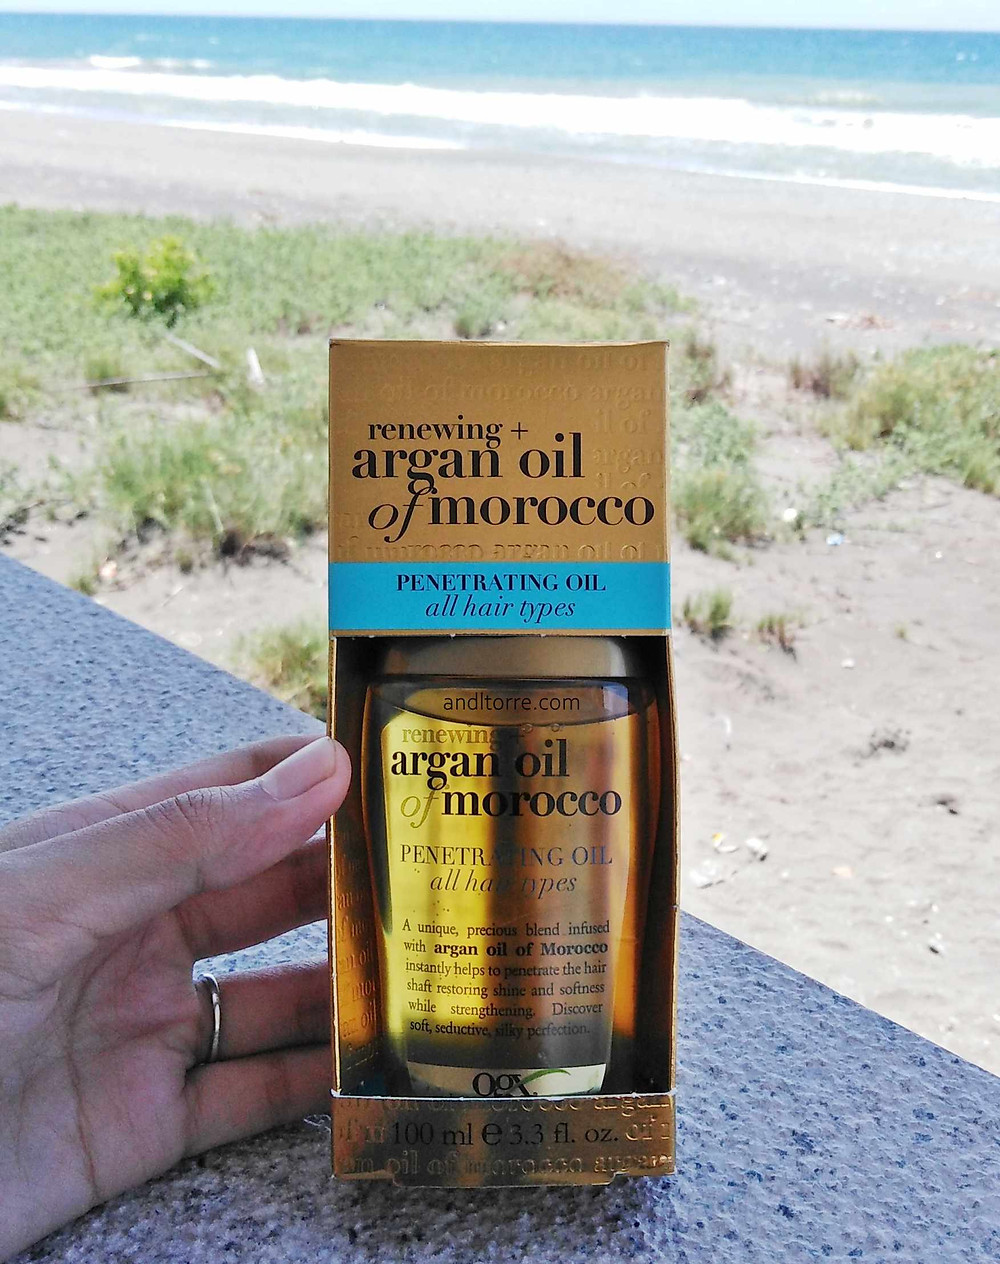 OGX Renewing + Argan Oil of Morocco Penetrating Oil | Review | A Lifestyle Blog by Andi